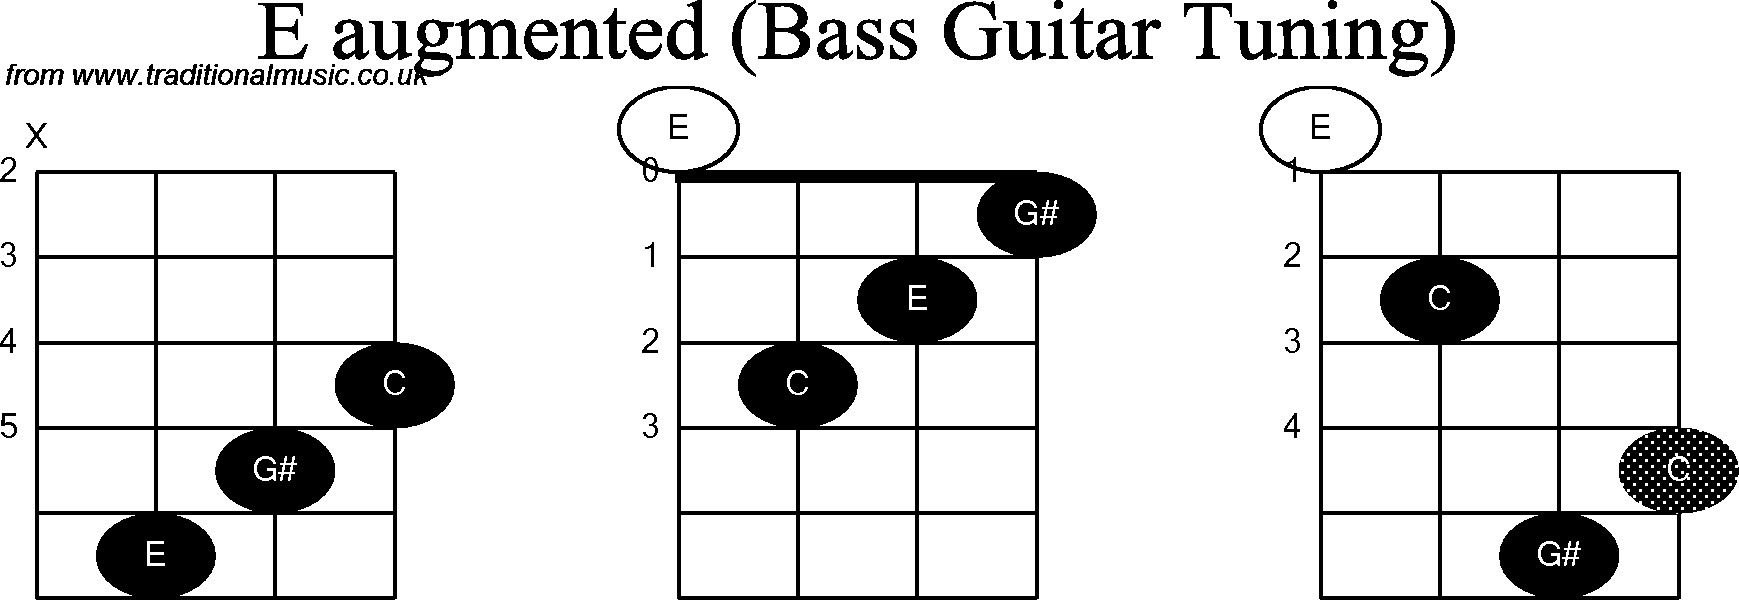 Bass Guitar Chord Diagrams For E Augmented